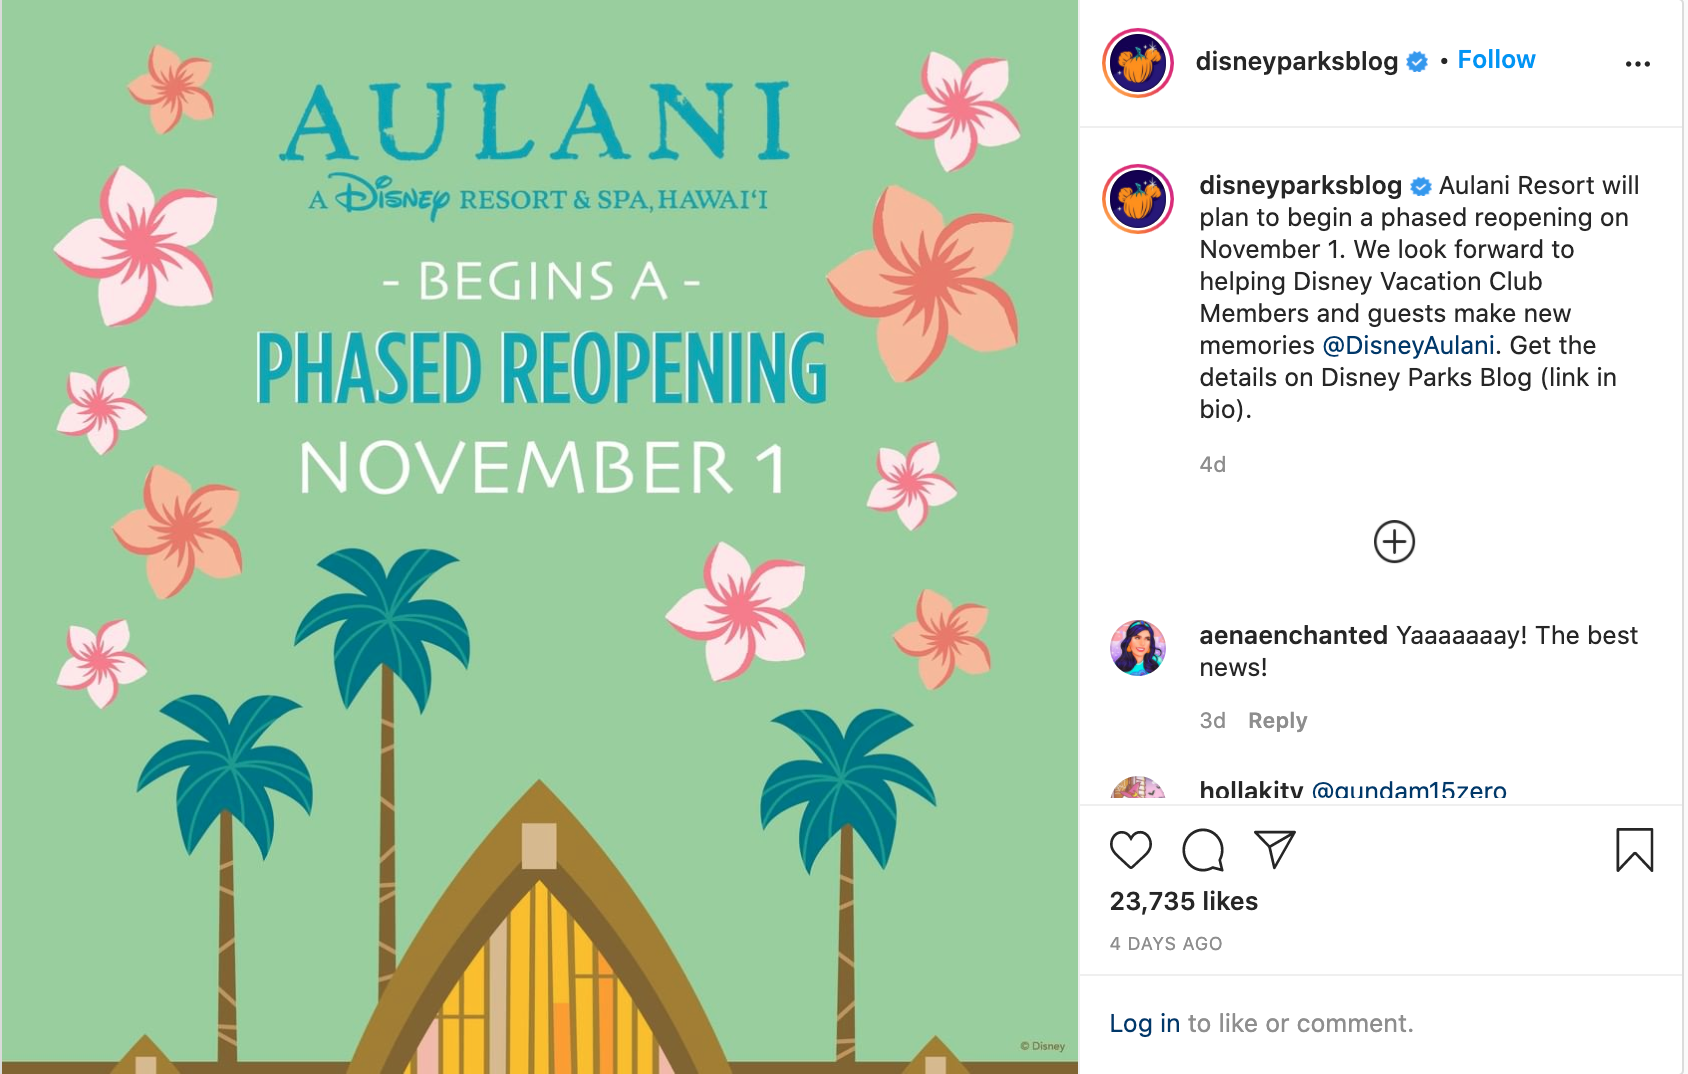 aulani insta post 1